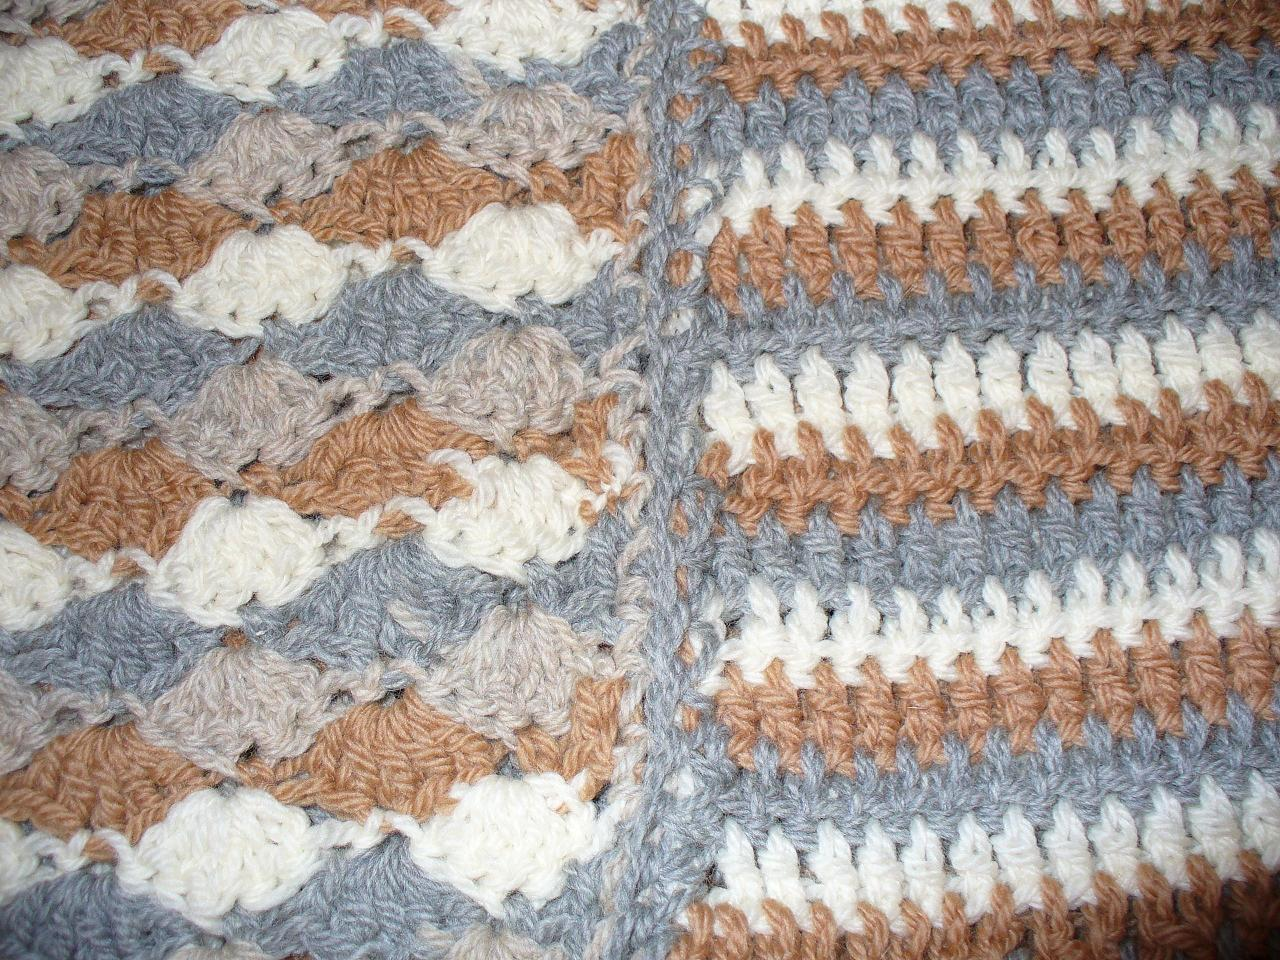 Crocheting Vs : Knitting VS Crochet: My Nephews Crochet Blanket